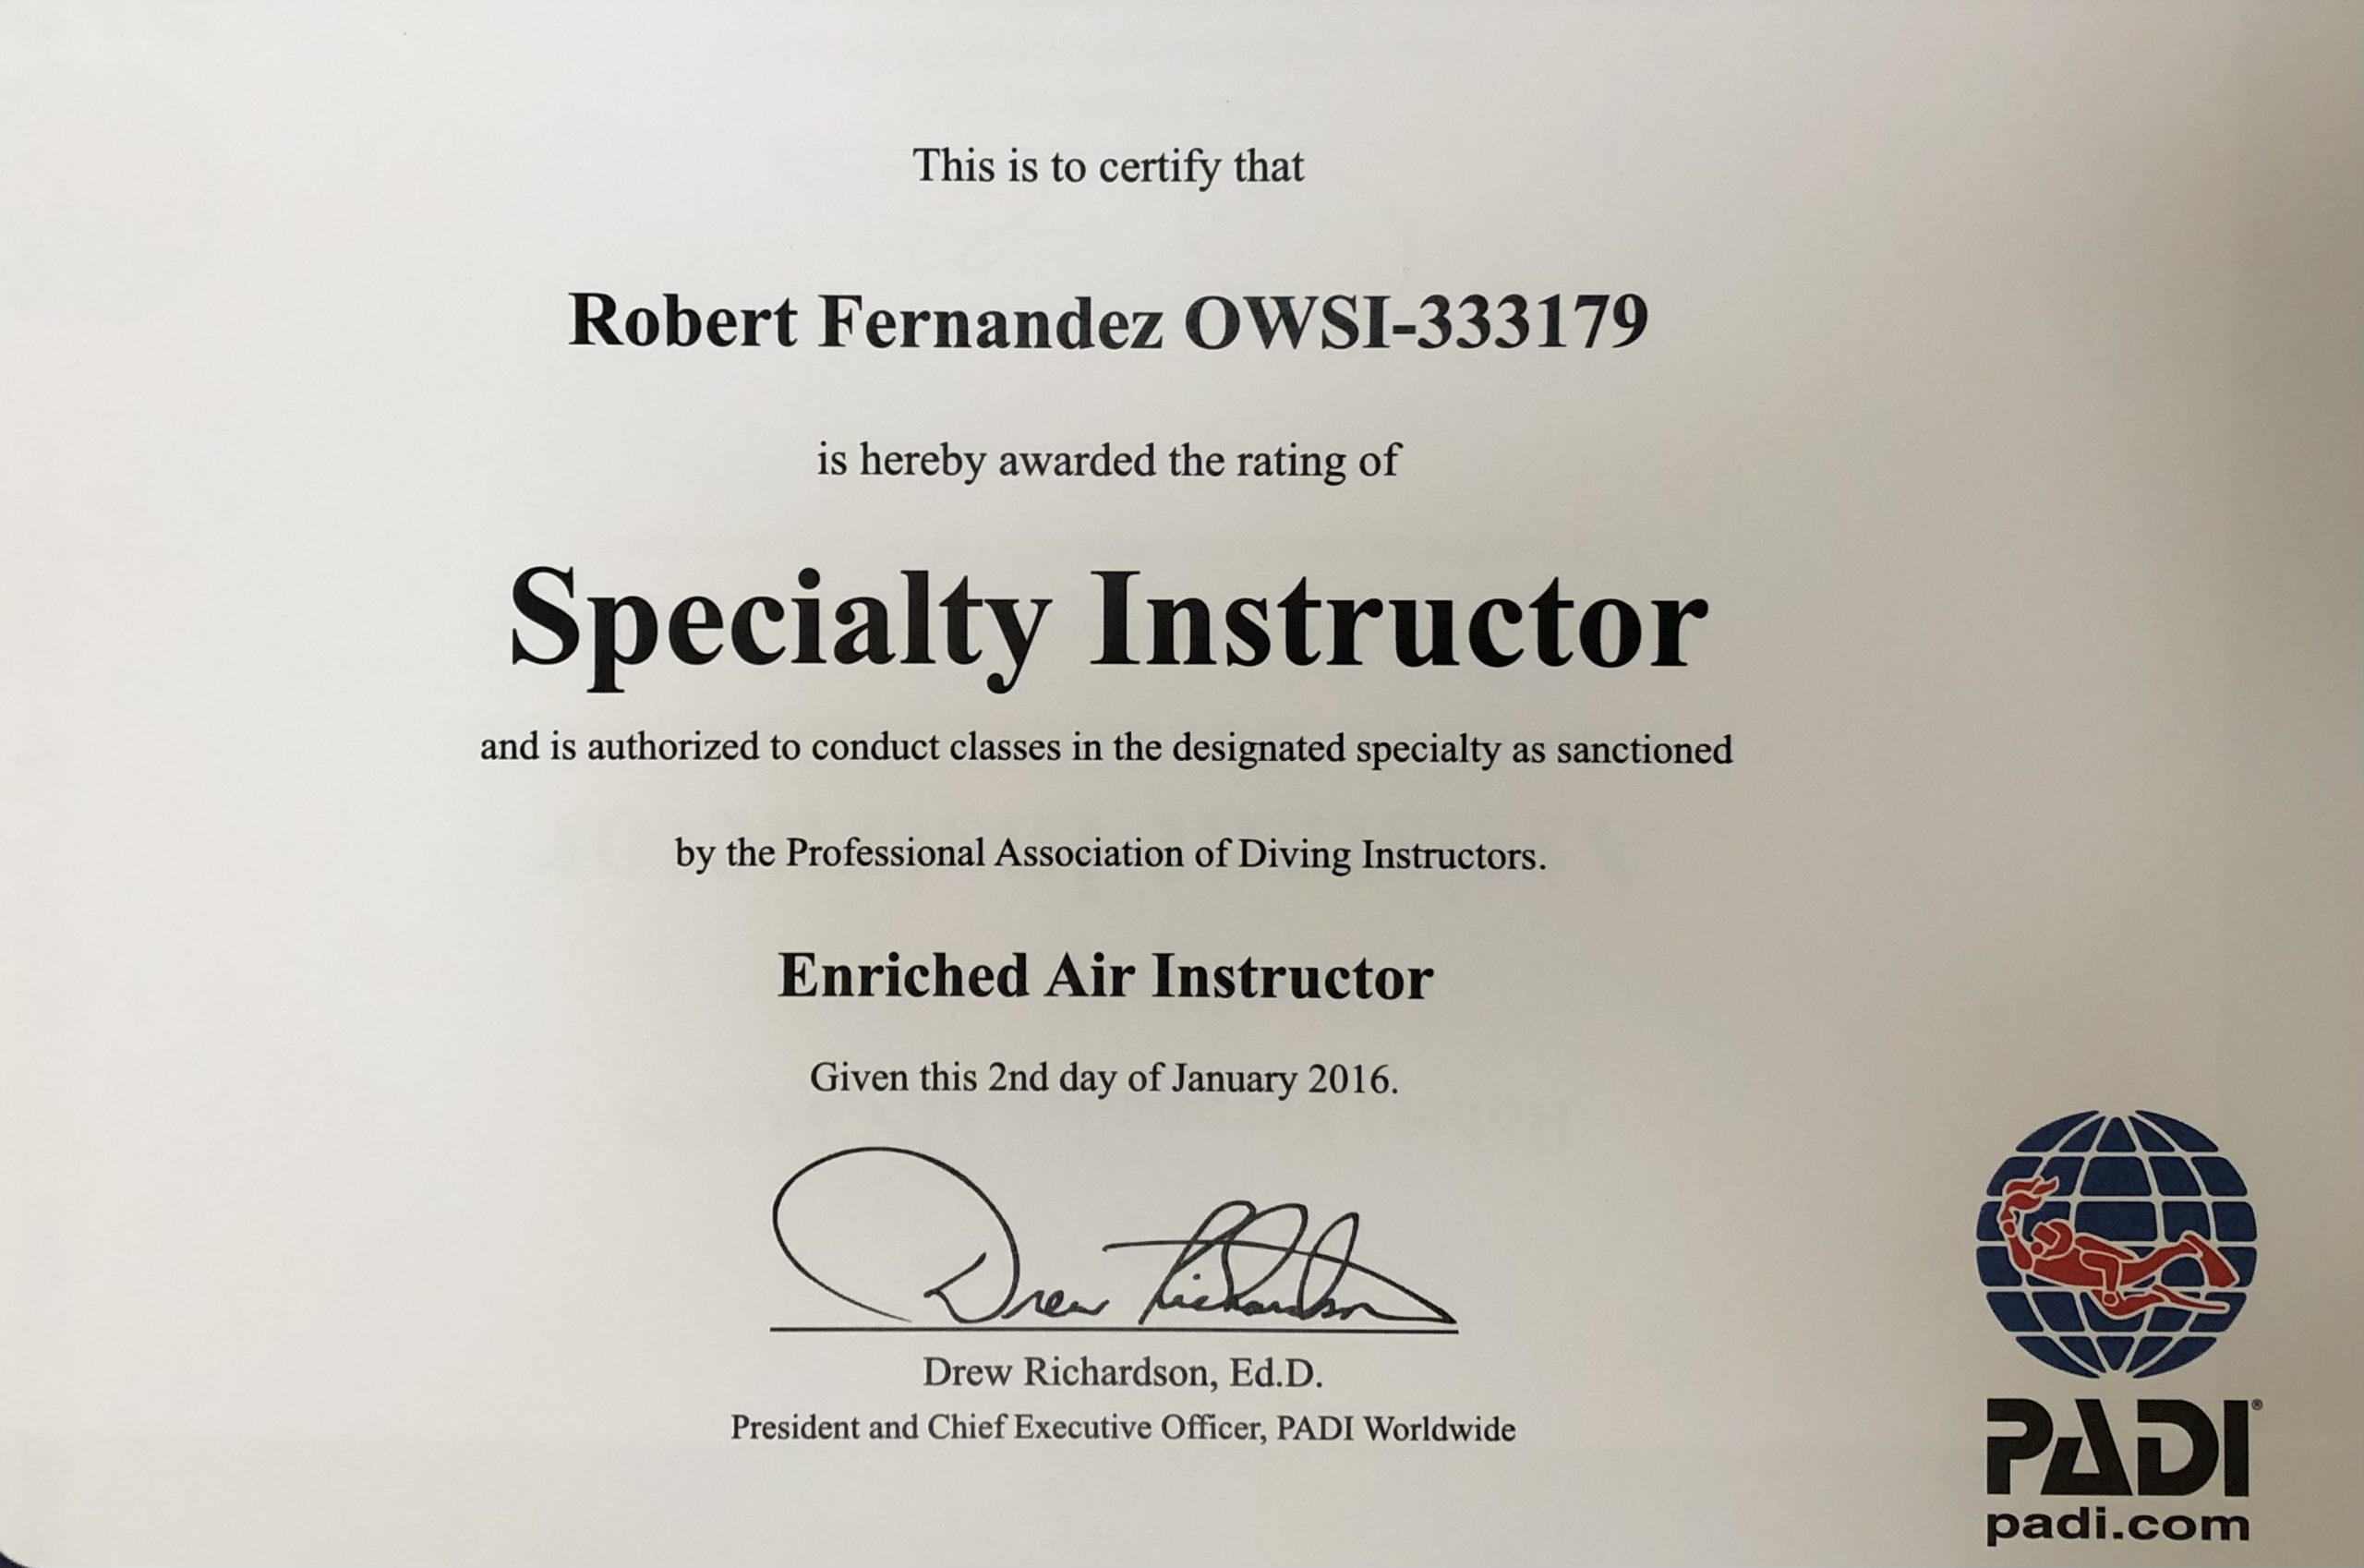 enriched air instructor